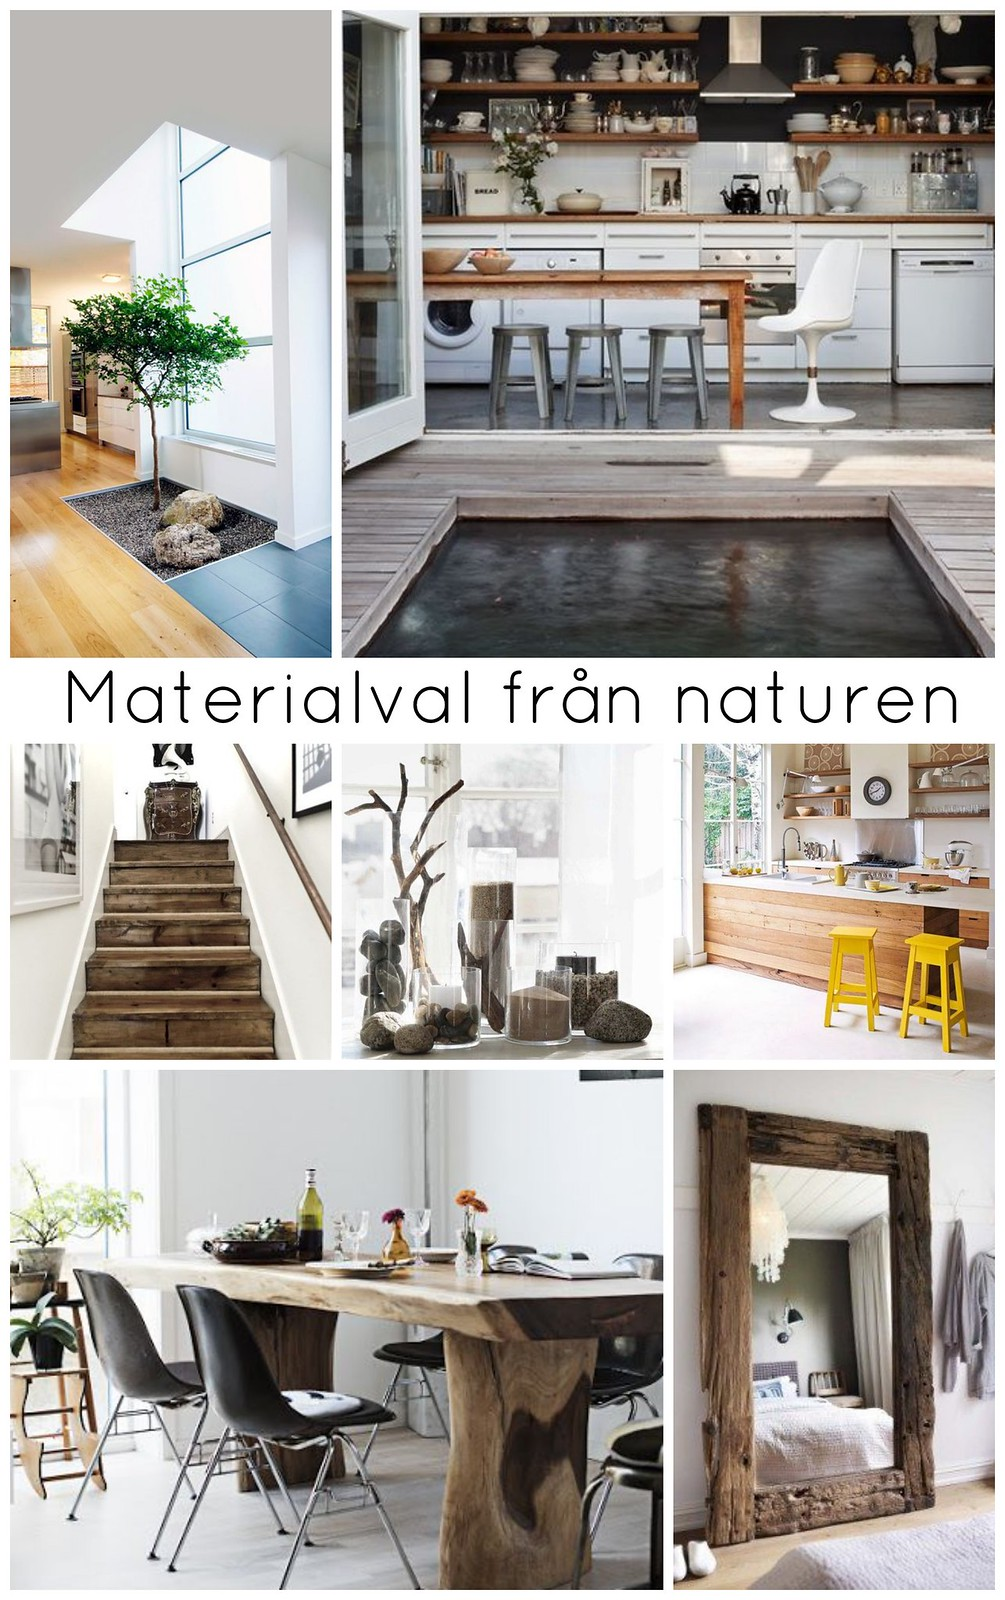 Materialval från naturen